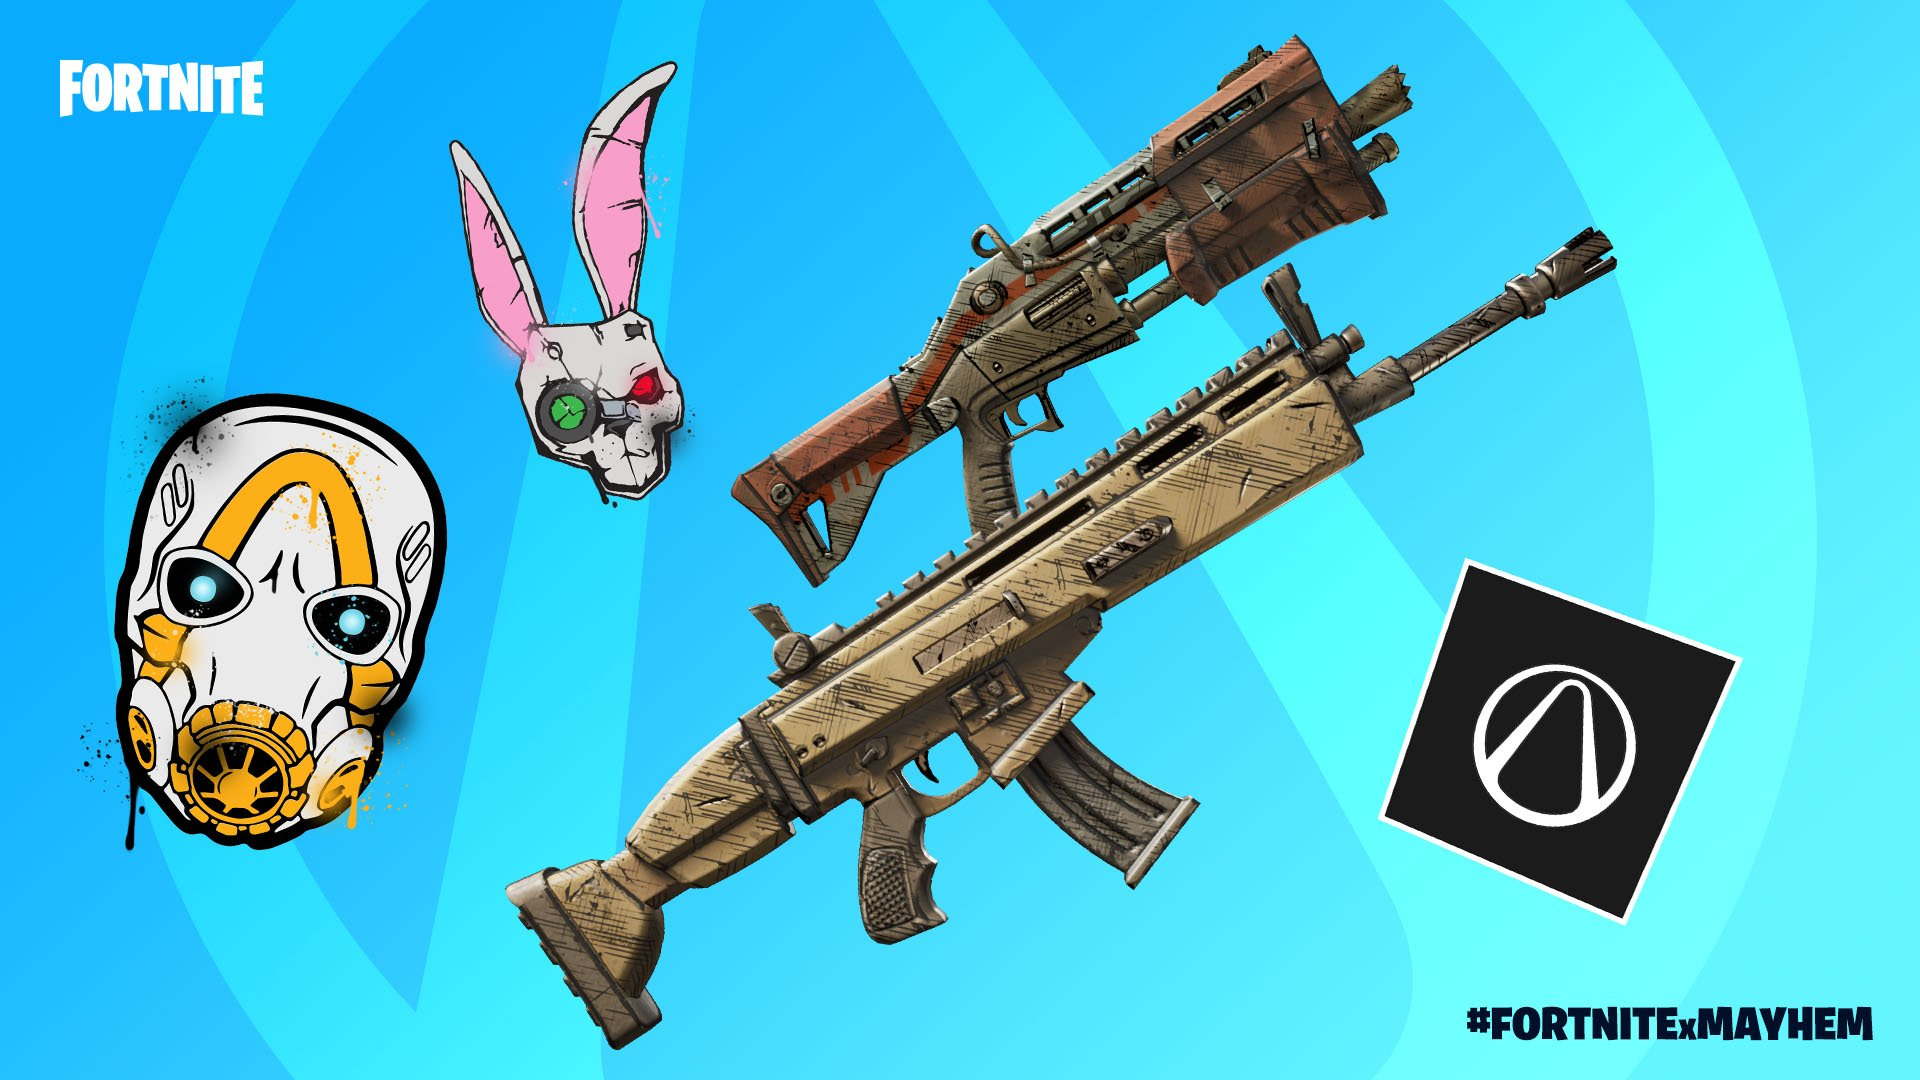 Complete The Free In Game Challenges By September 9 To